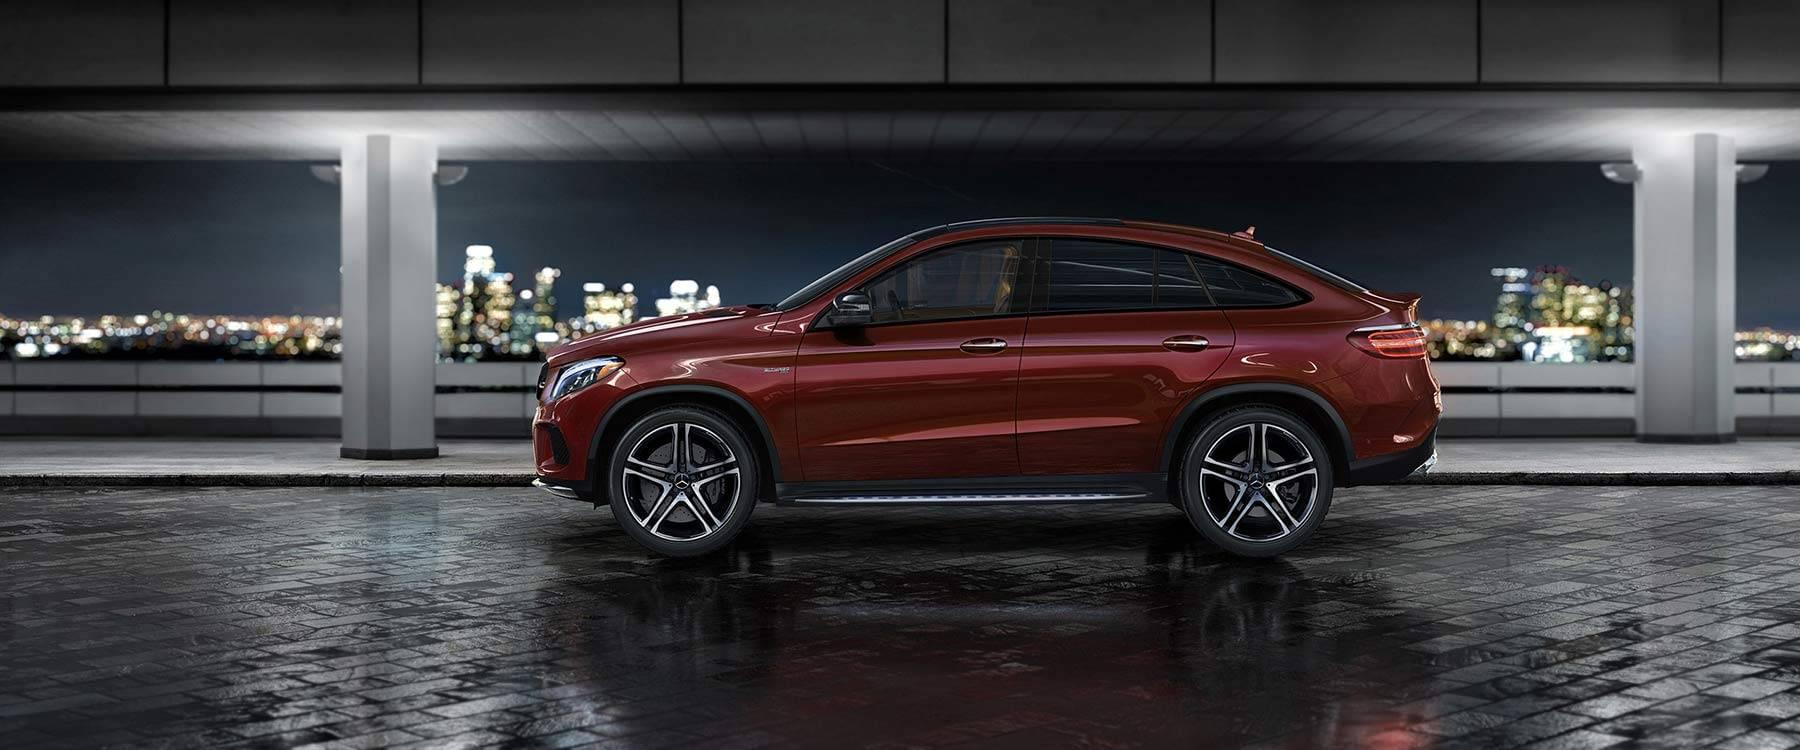 the fearless 2017 mercedes benz amg gle 43 sports activity coupe. Black Bedroom Furniture Sets. Home Design Ideas